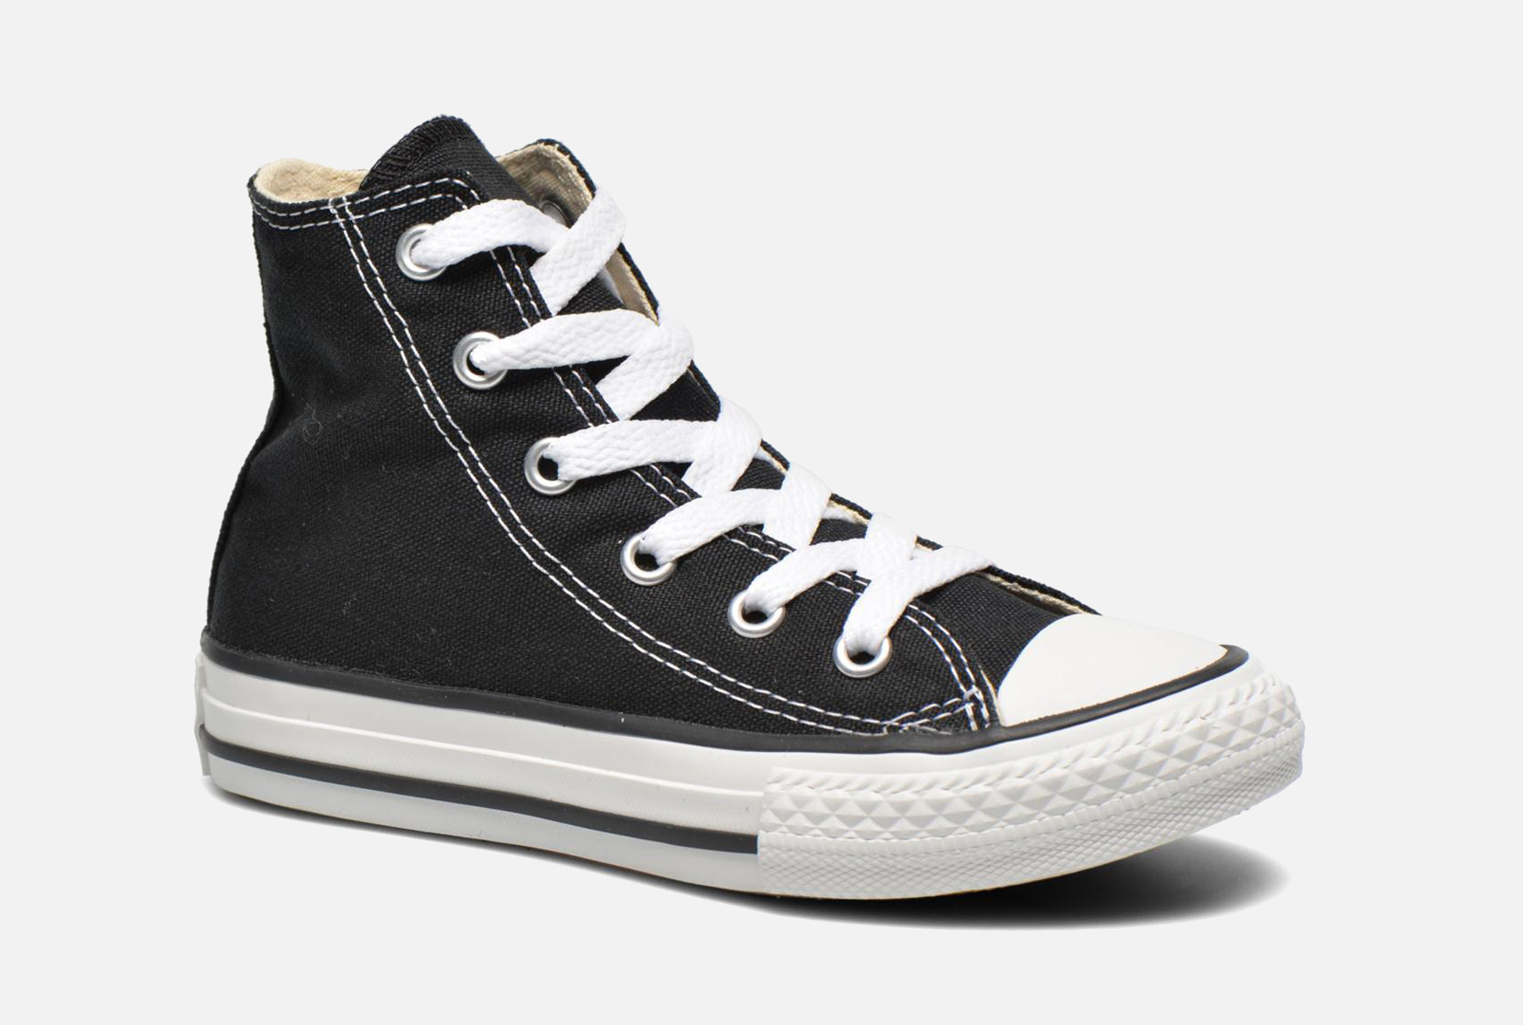 c3ec702d291 Converse Chuck Taylor All Star Core Hi